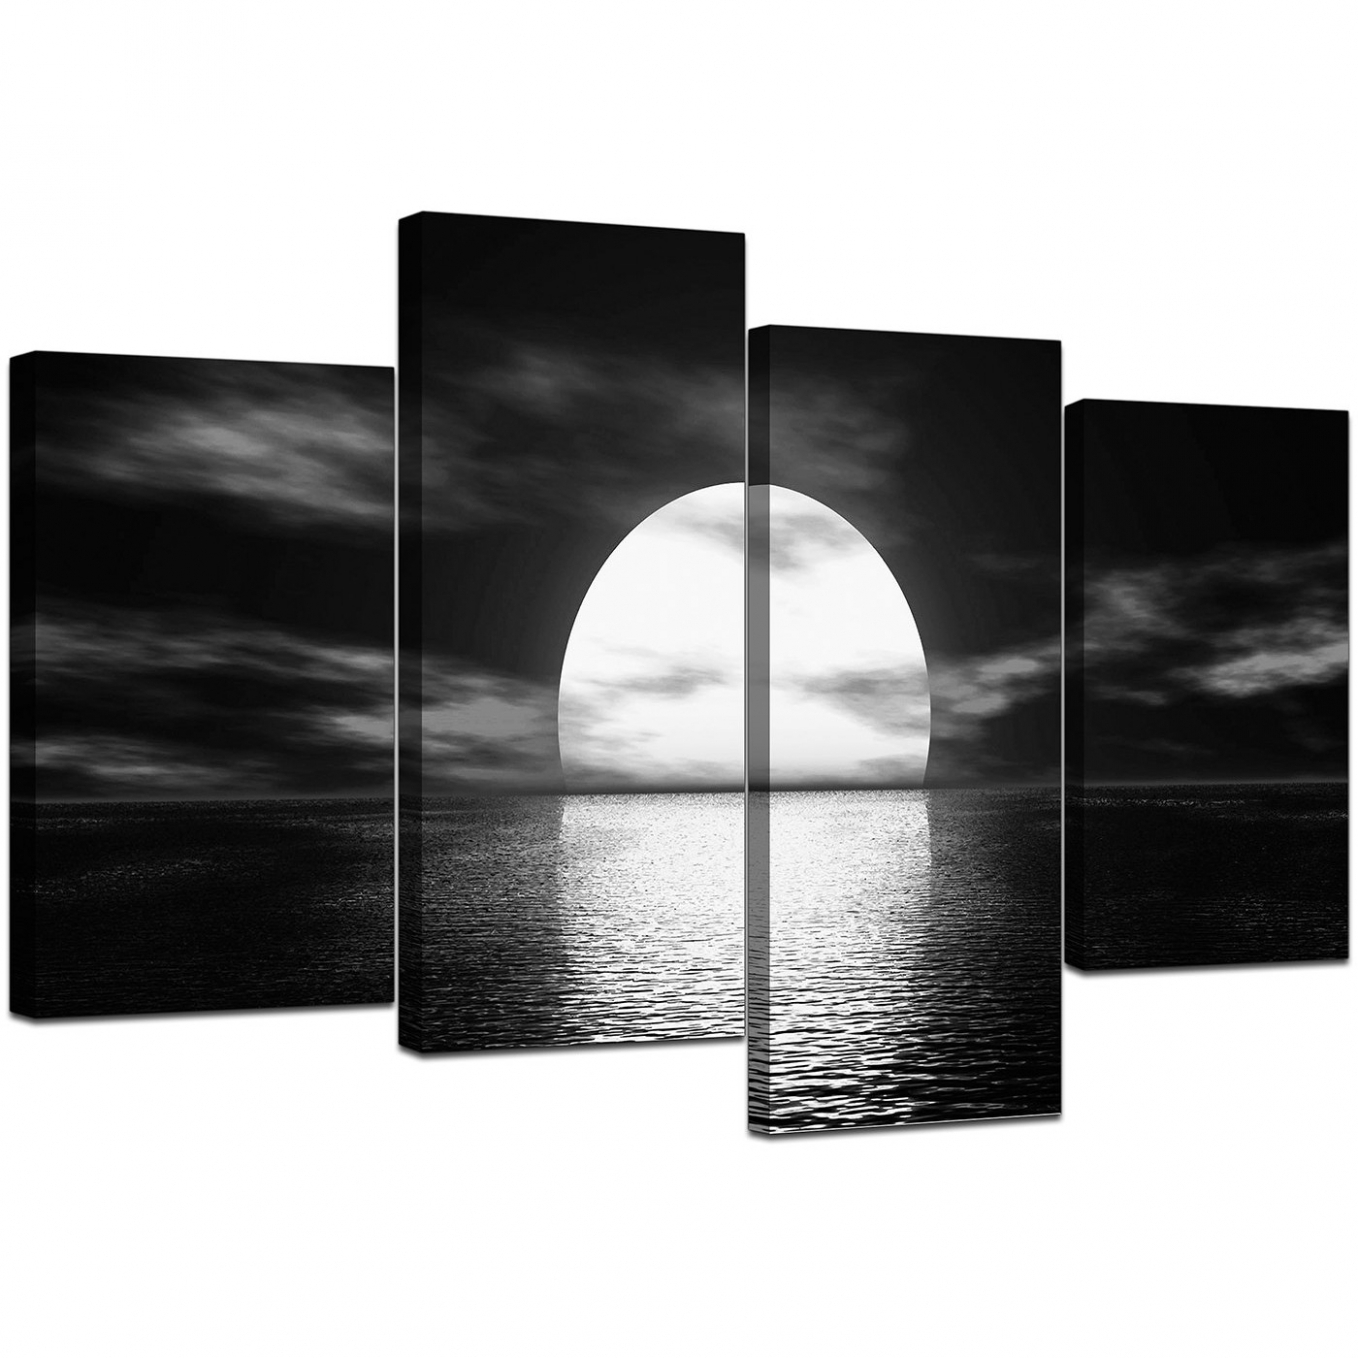 10 Best Ideas Of Black And White Large Canvas Wall Art Inside Most Up To Date Black And White Photography Canvas Wall Art (View 1 of 15)